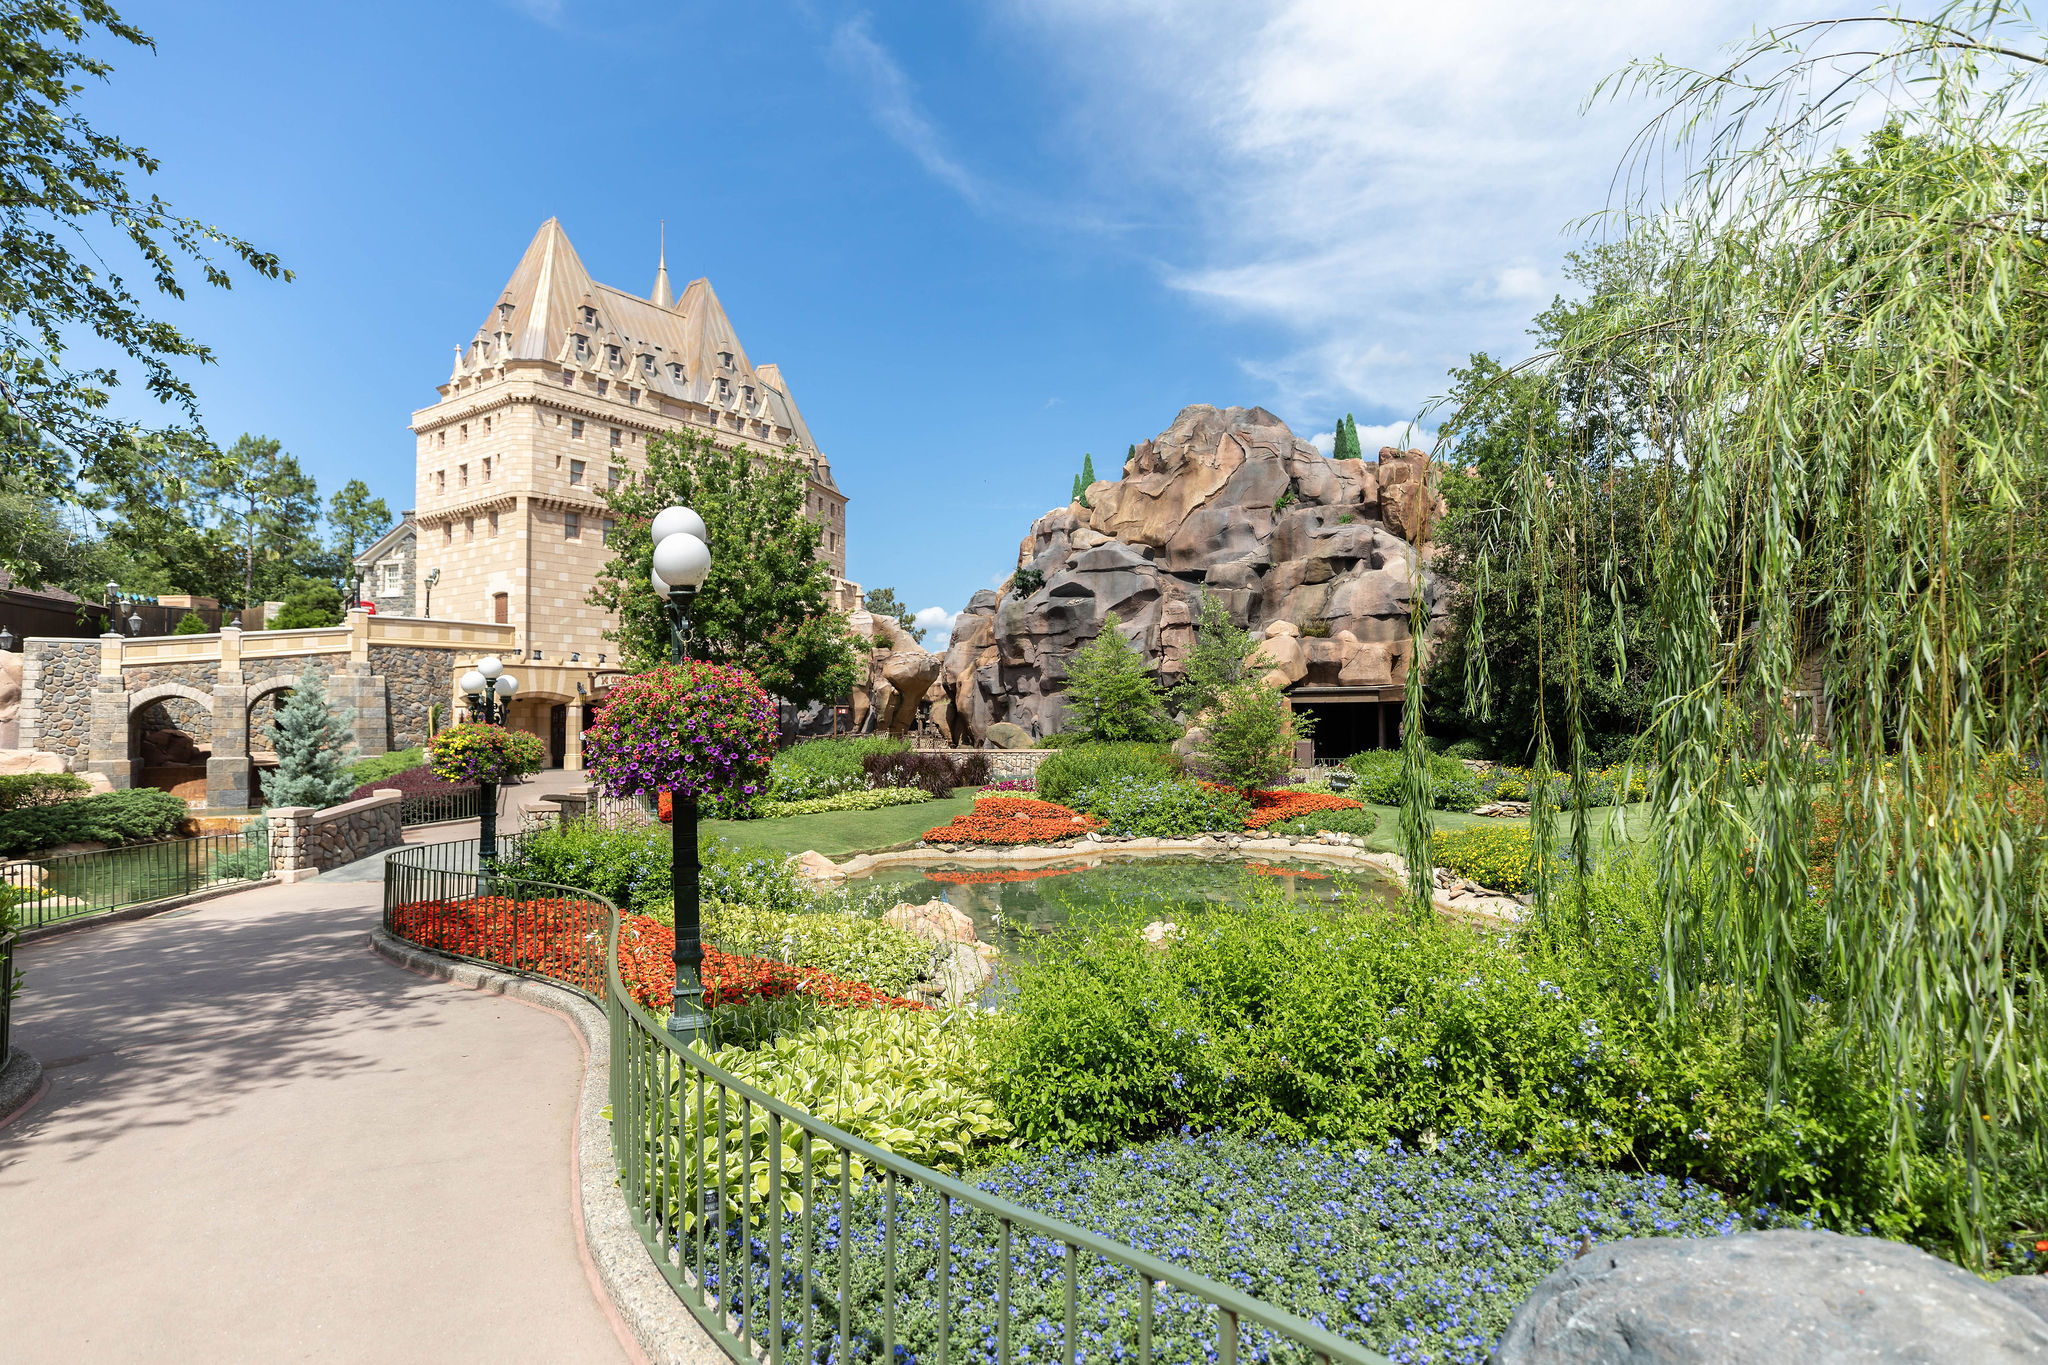 Epcot World Showcase Canada Pavillion Without Crowds Photographed by Luxury Travel Writer Annie Fairfax